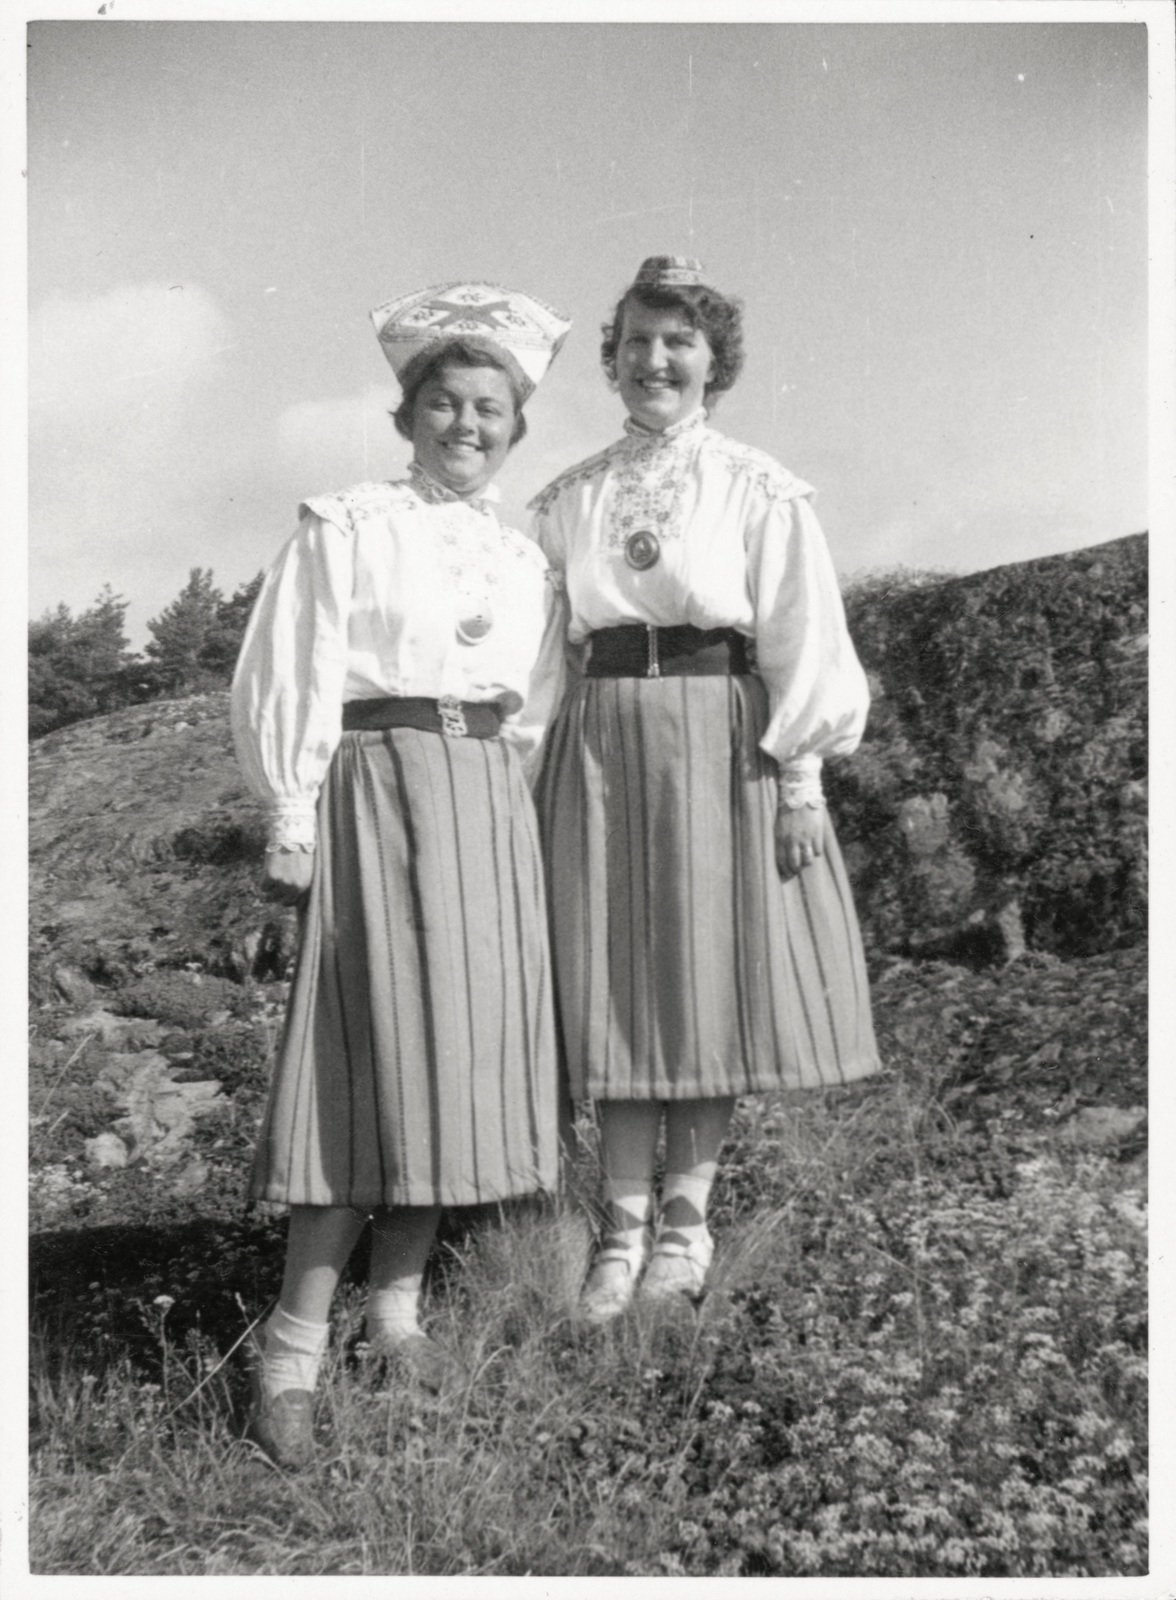 Twin sisters in Estonian national costume, c. 1944, Unknown, Sörmlands Museum, CC BY-SA